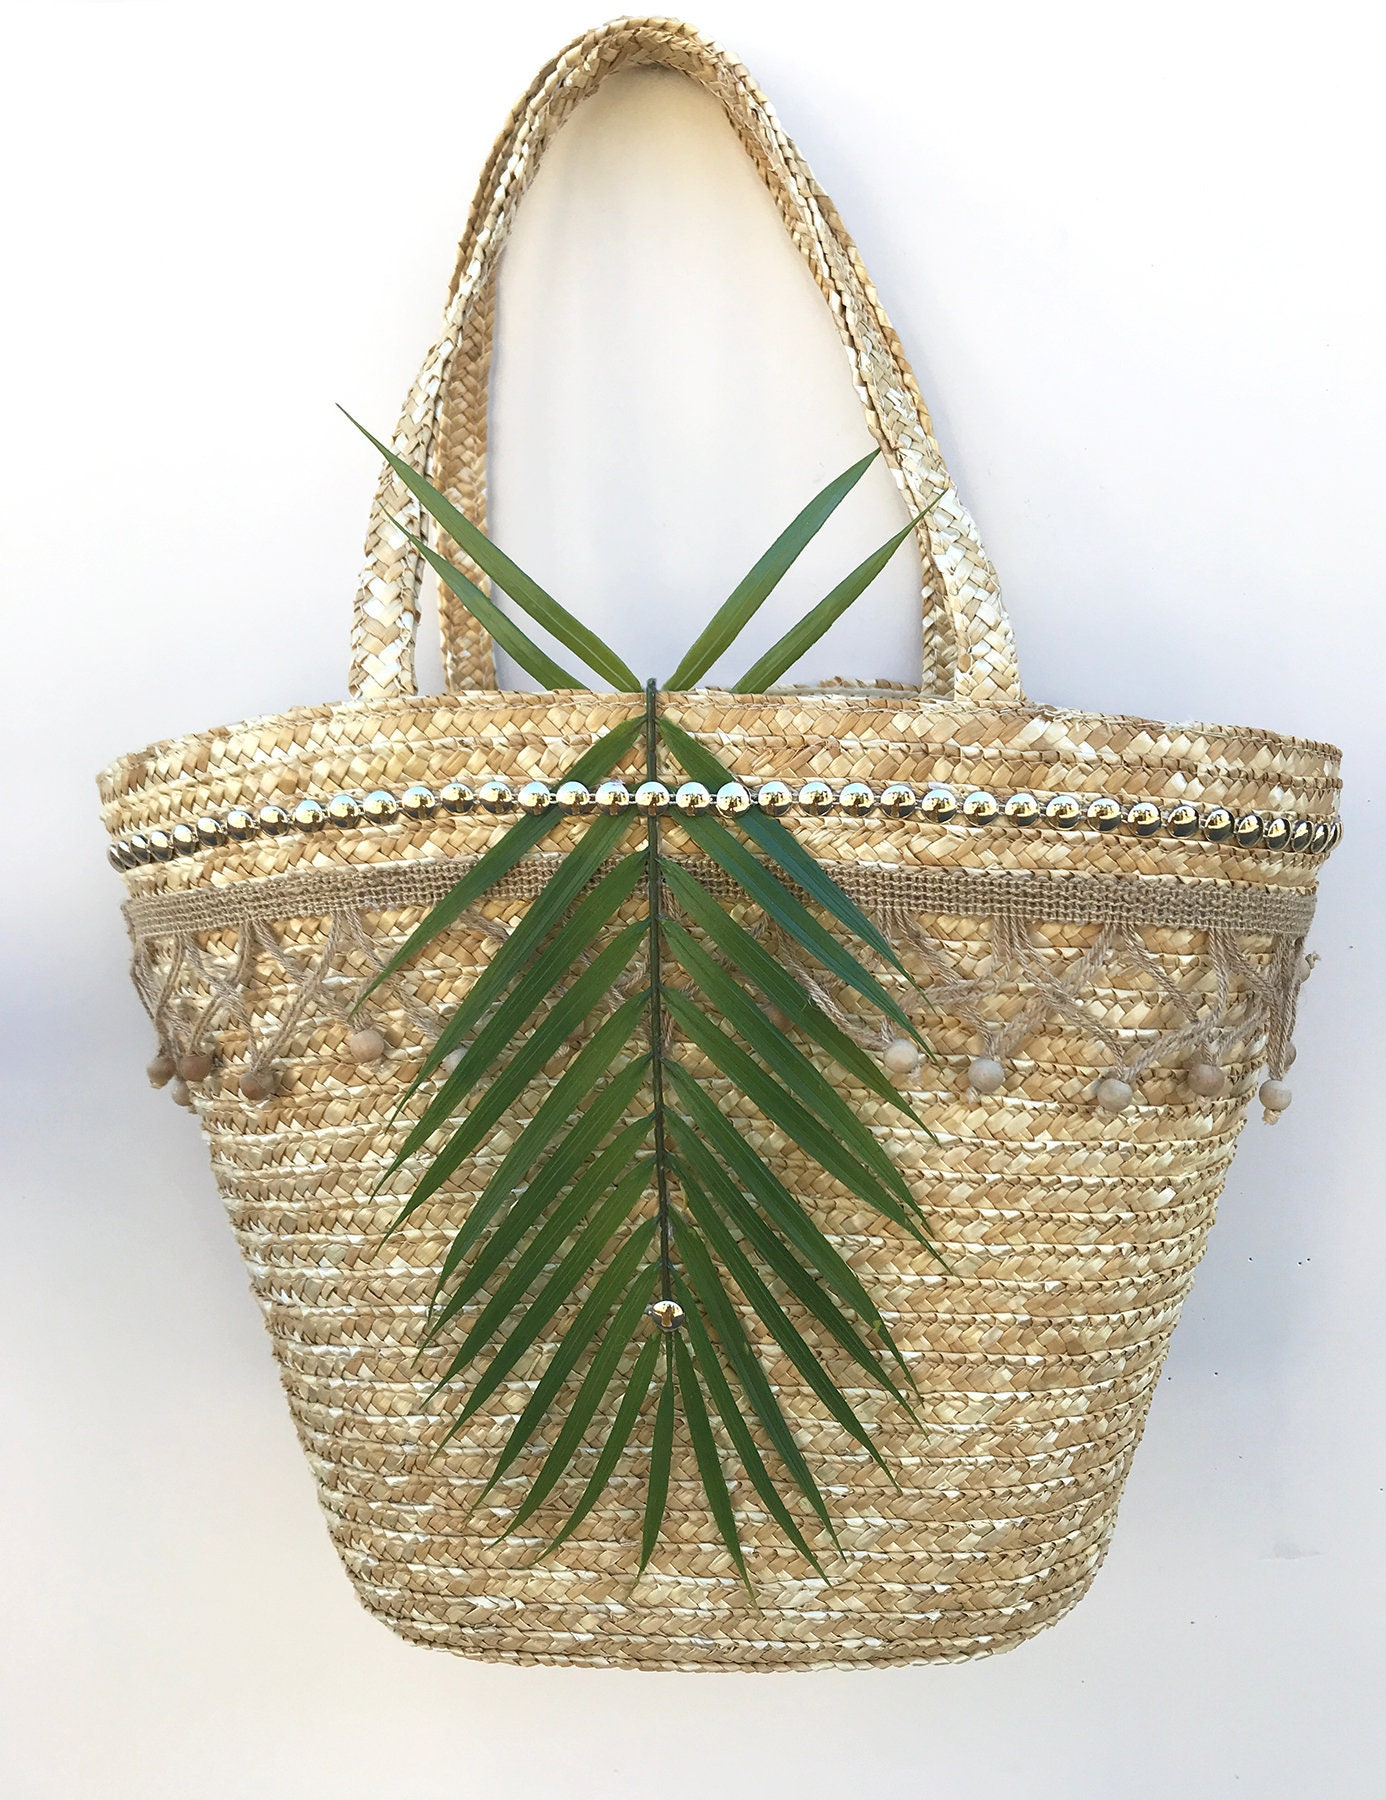 Handmade Unique Straw Coconut Leaf Bag Boho Summer Beach